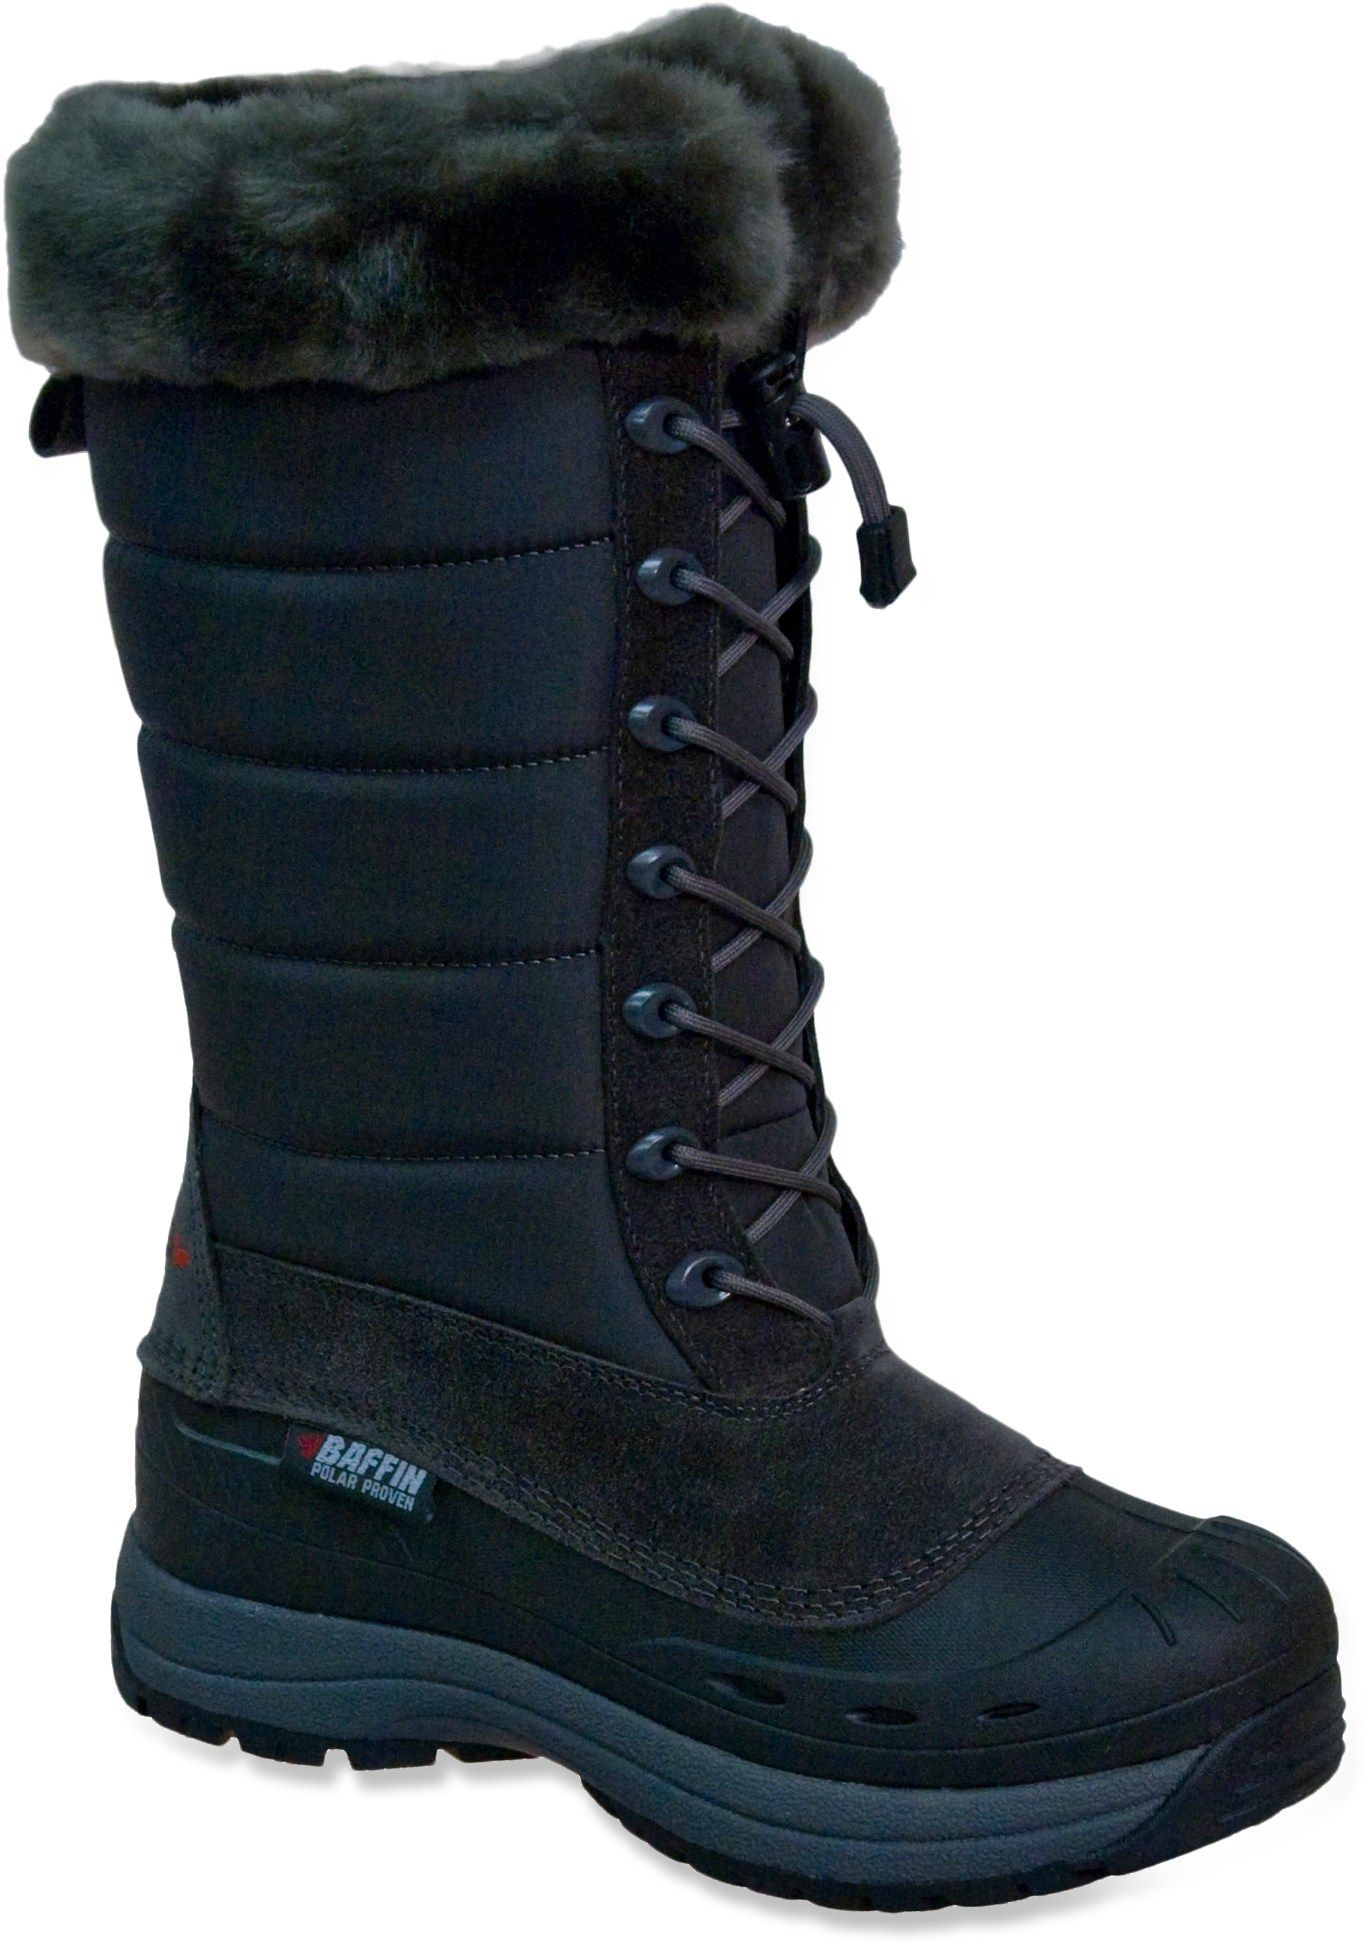 d5049ca1c00 Iceland Winter Boots - Women's | Entry for REI Winter Wish List Pin ...